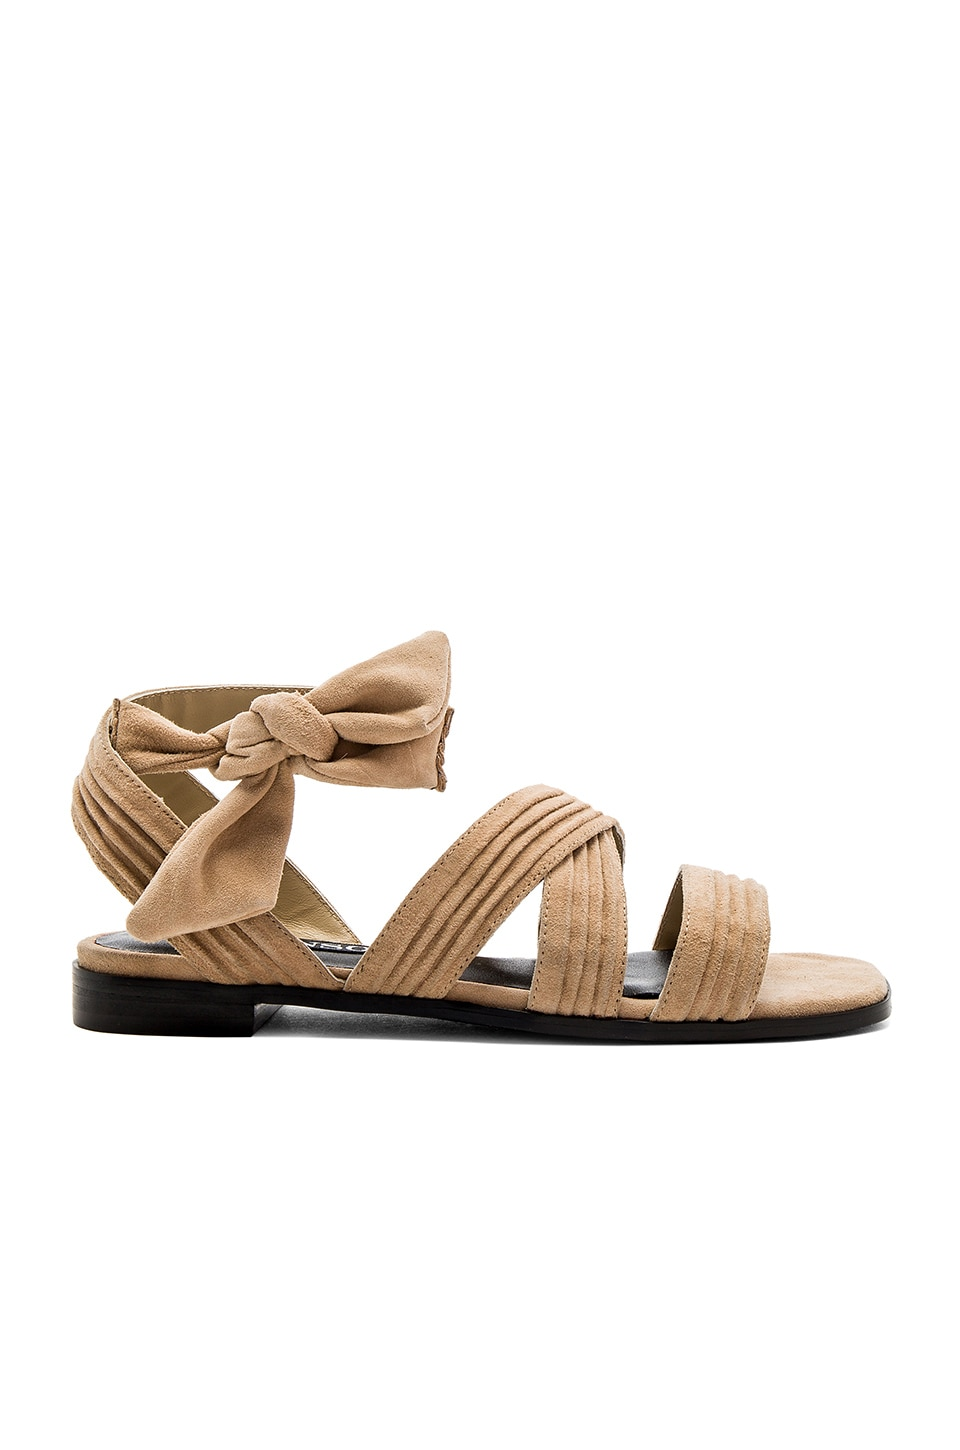 Haley Sandal by SENSO